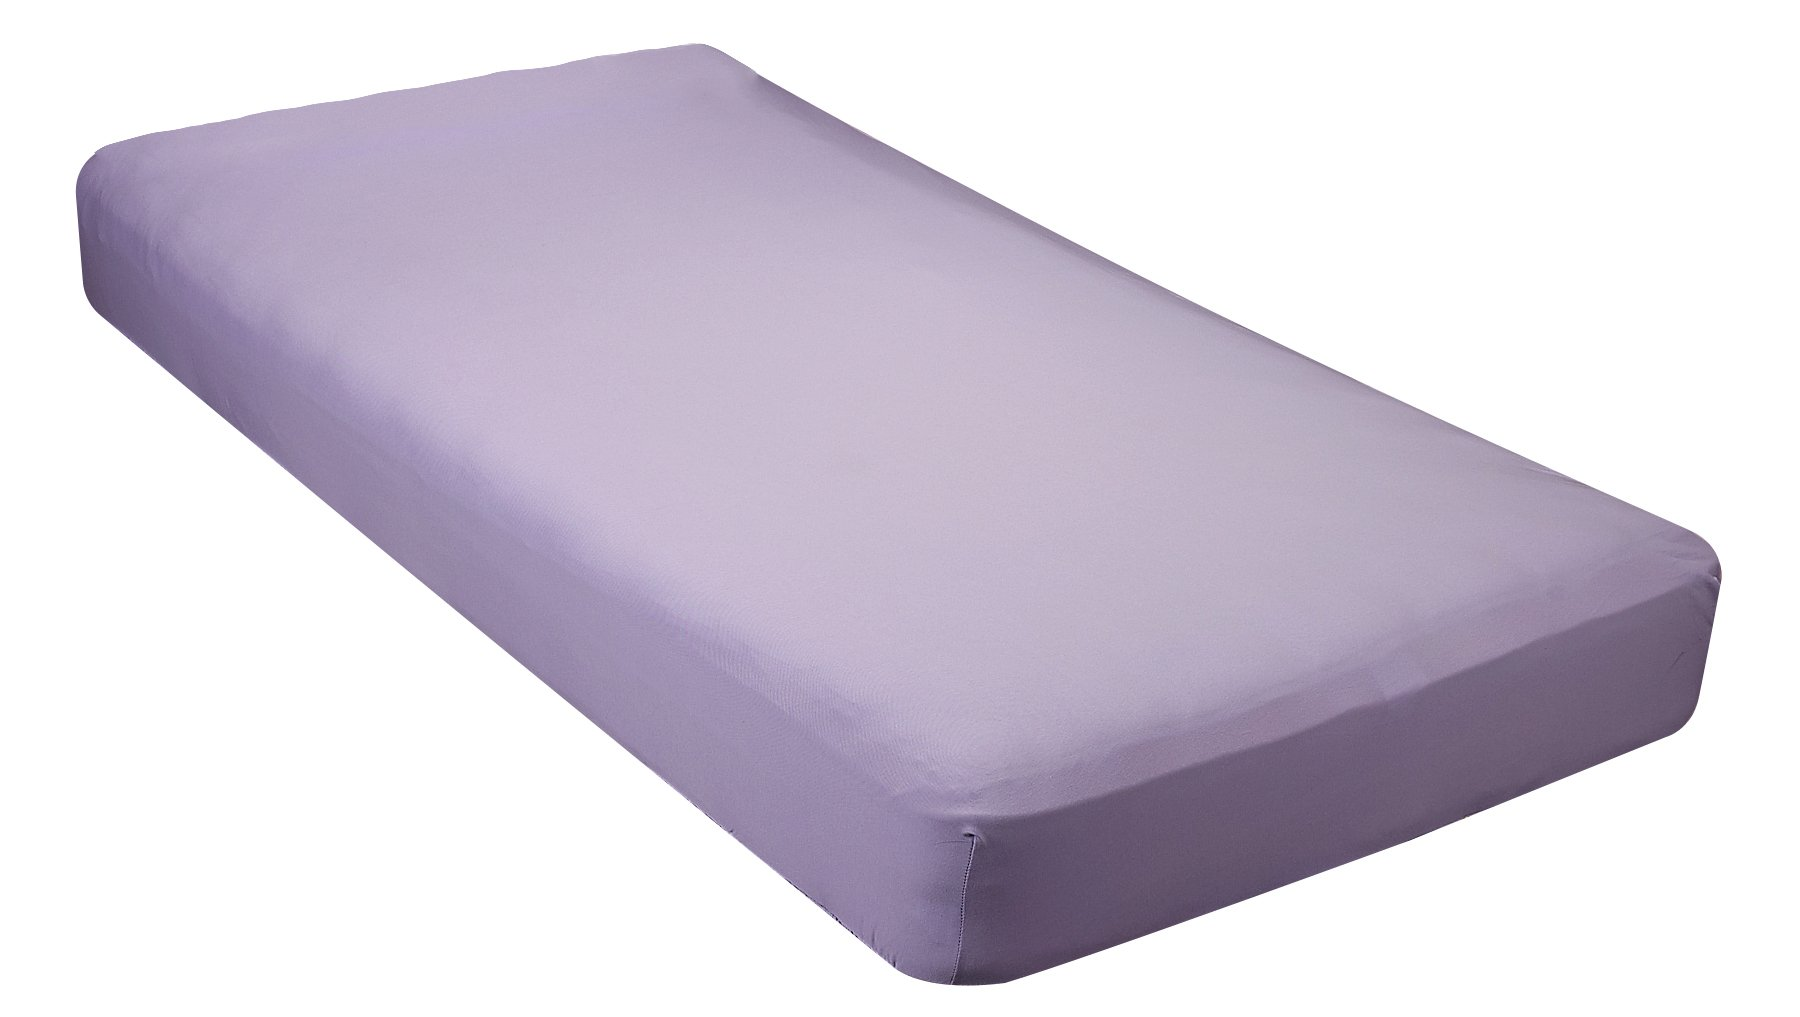 Gilbin 100% Jersey Knit Cotton Fitted Cot Sheet For Camp Cot Mattresses 30'' x 75''